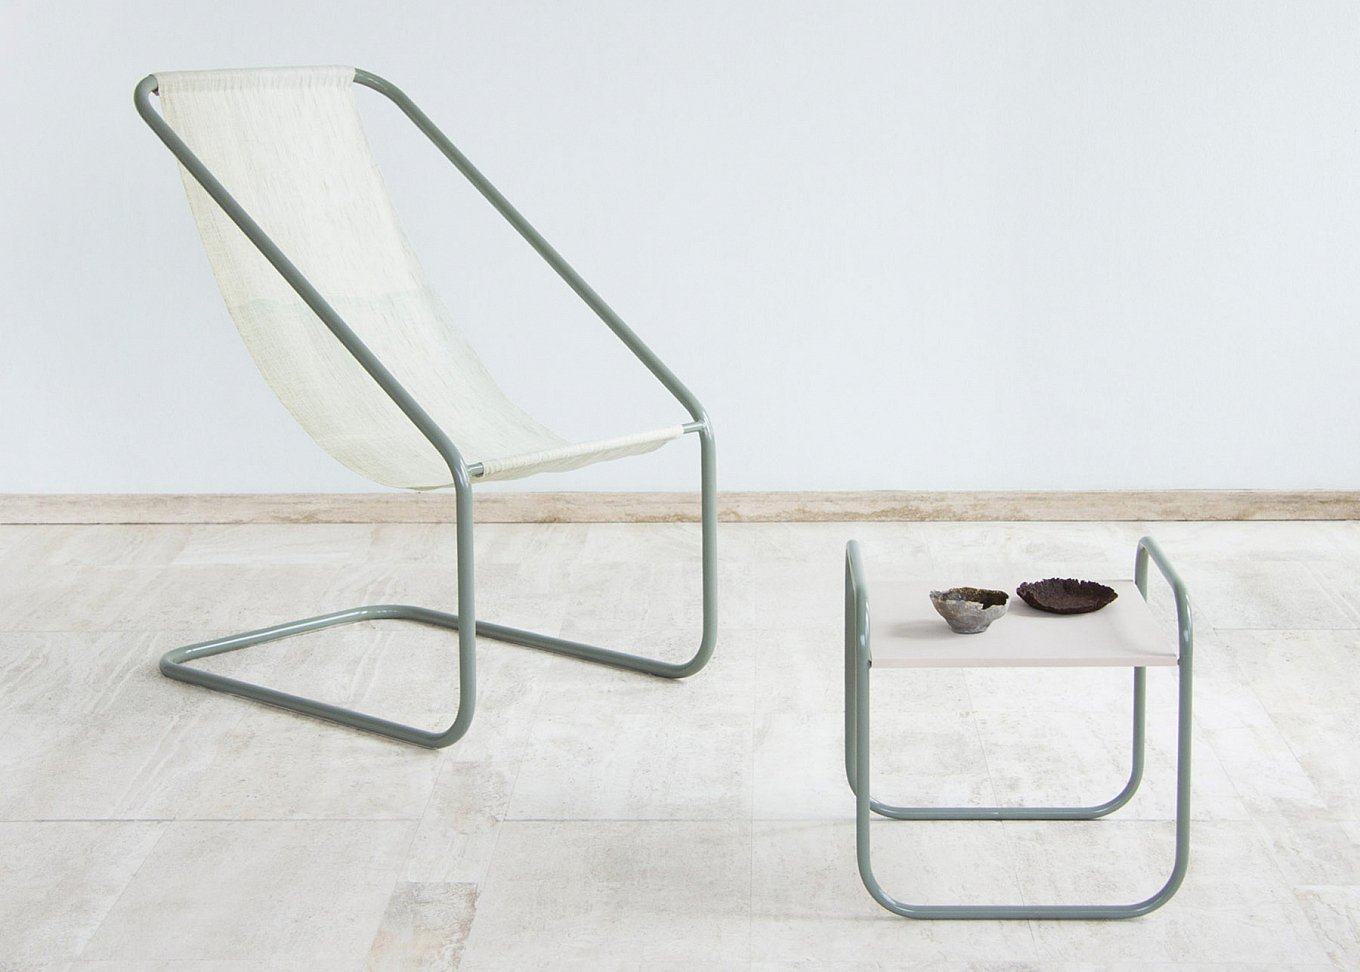 sea-me-sustainable-furniture-made-from-seaweed-1